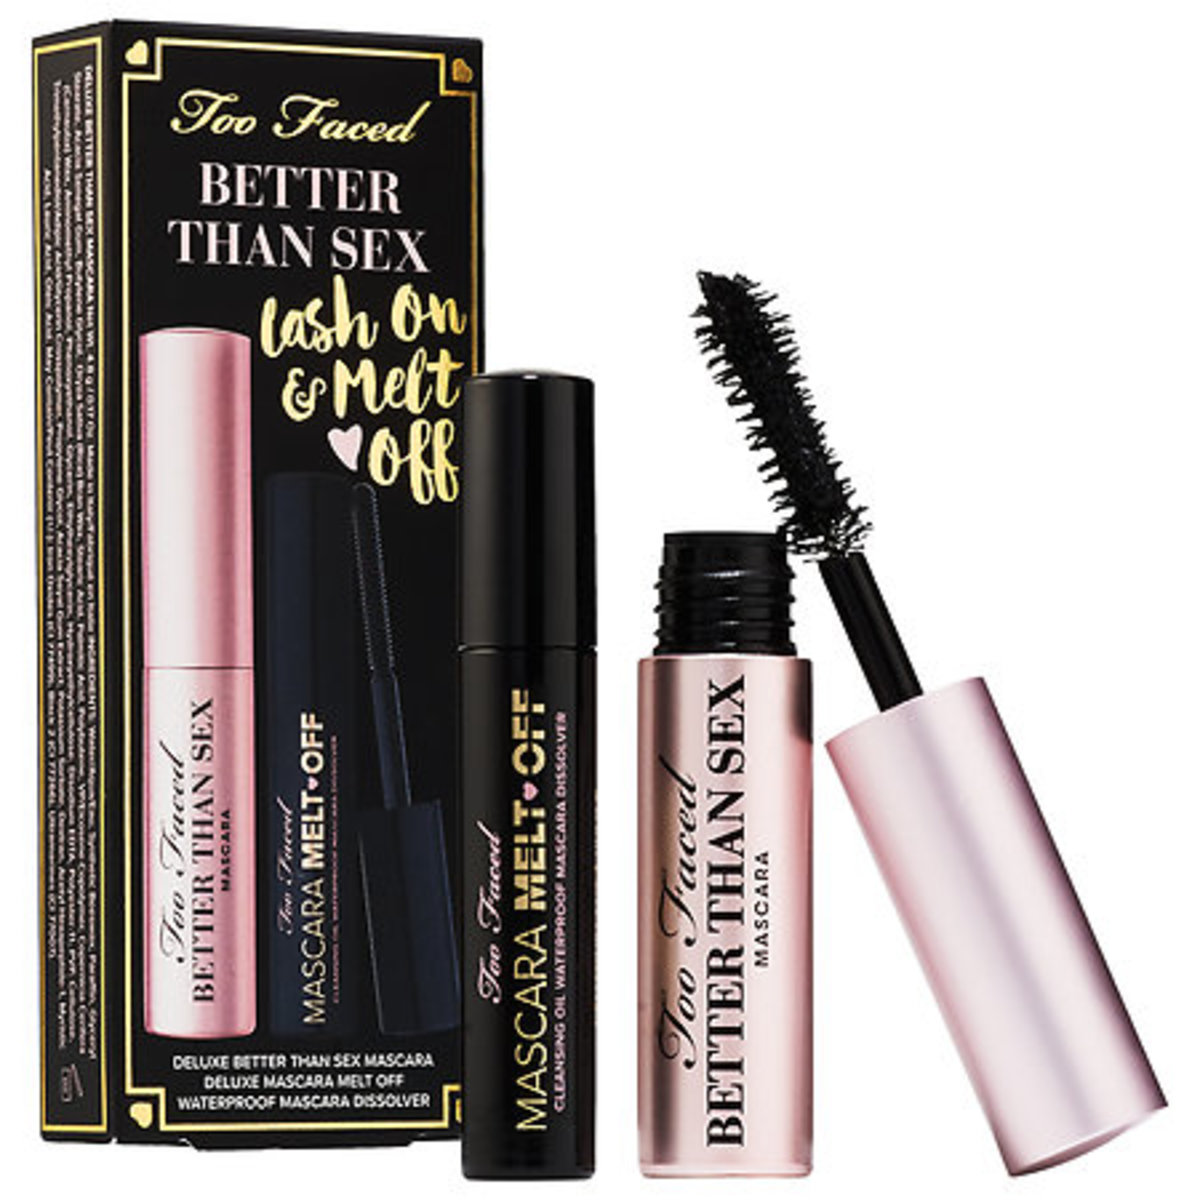 Too Faced Better Than Sex Lash On and Melt Off Set